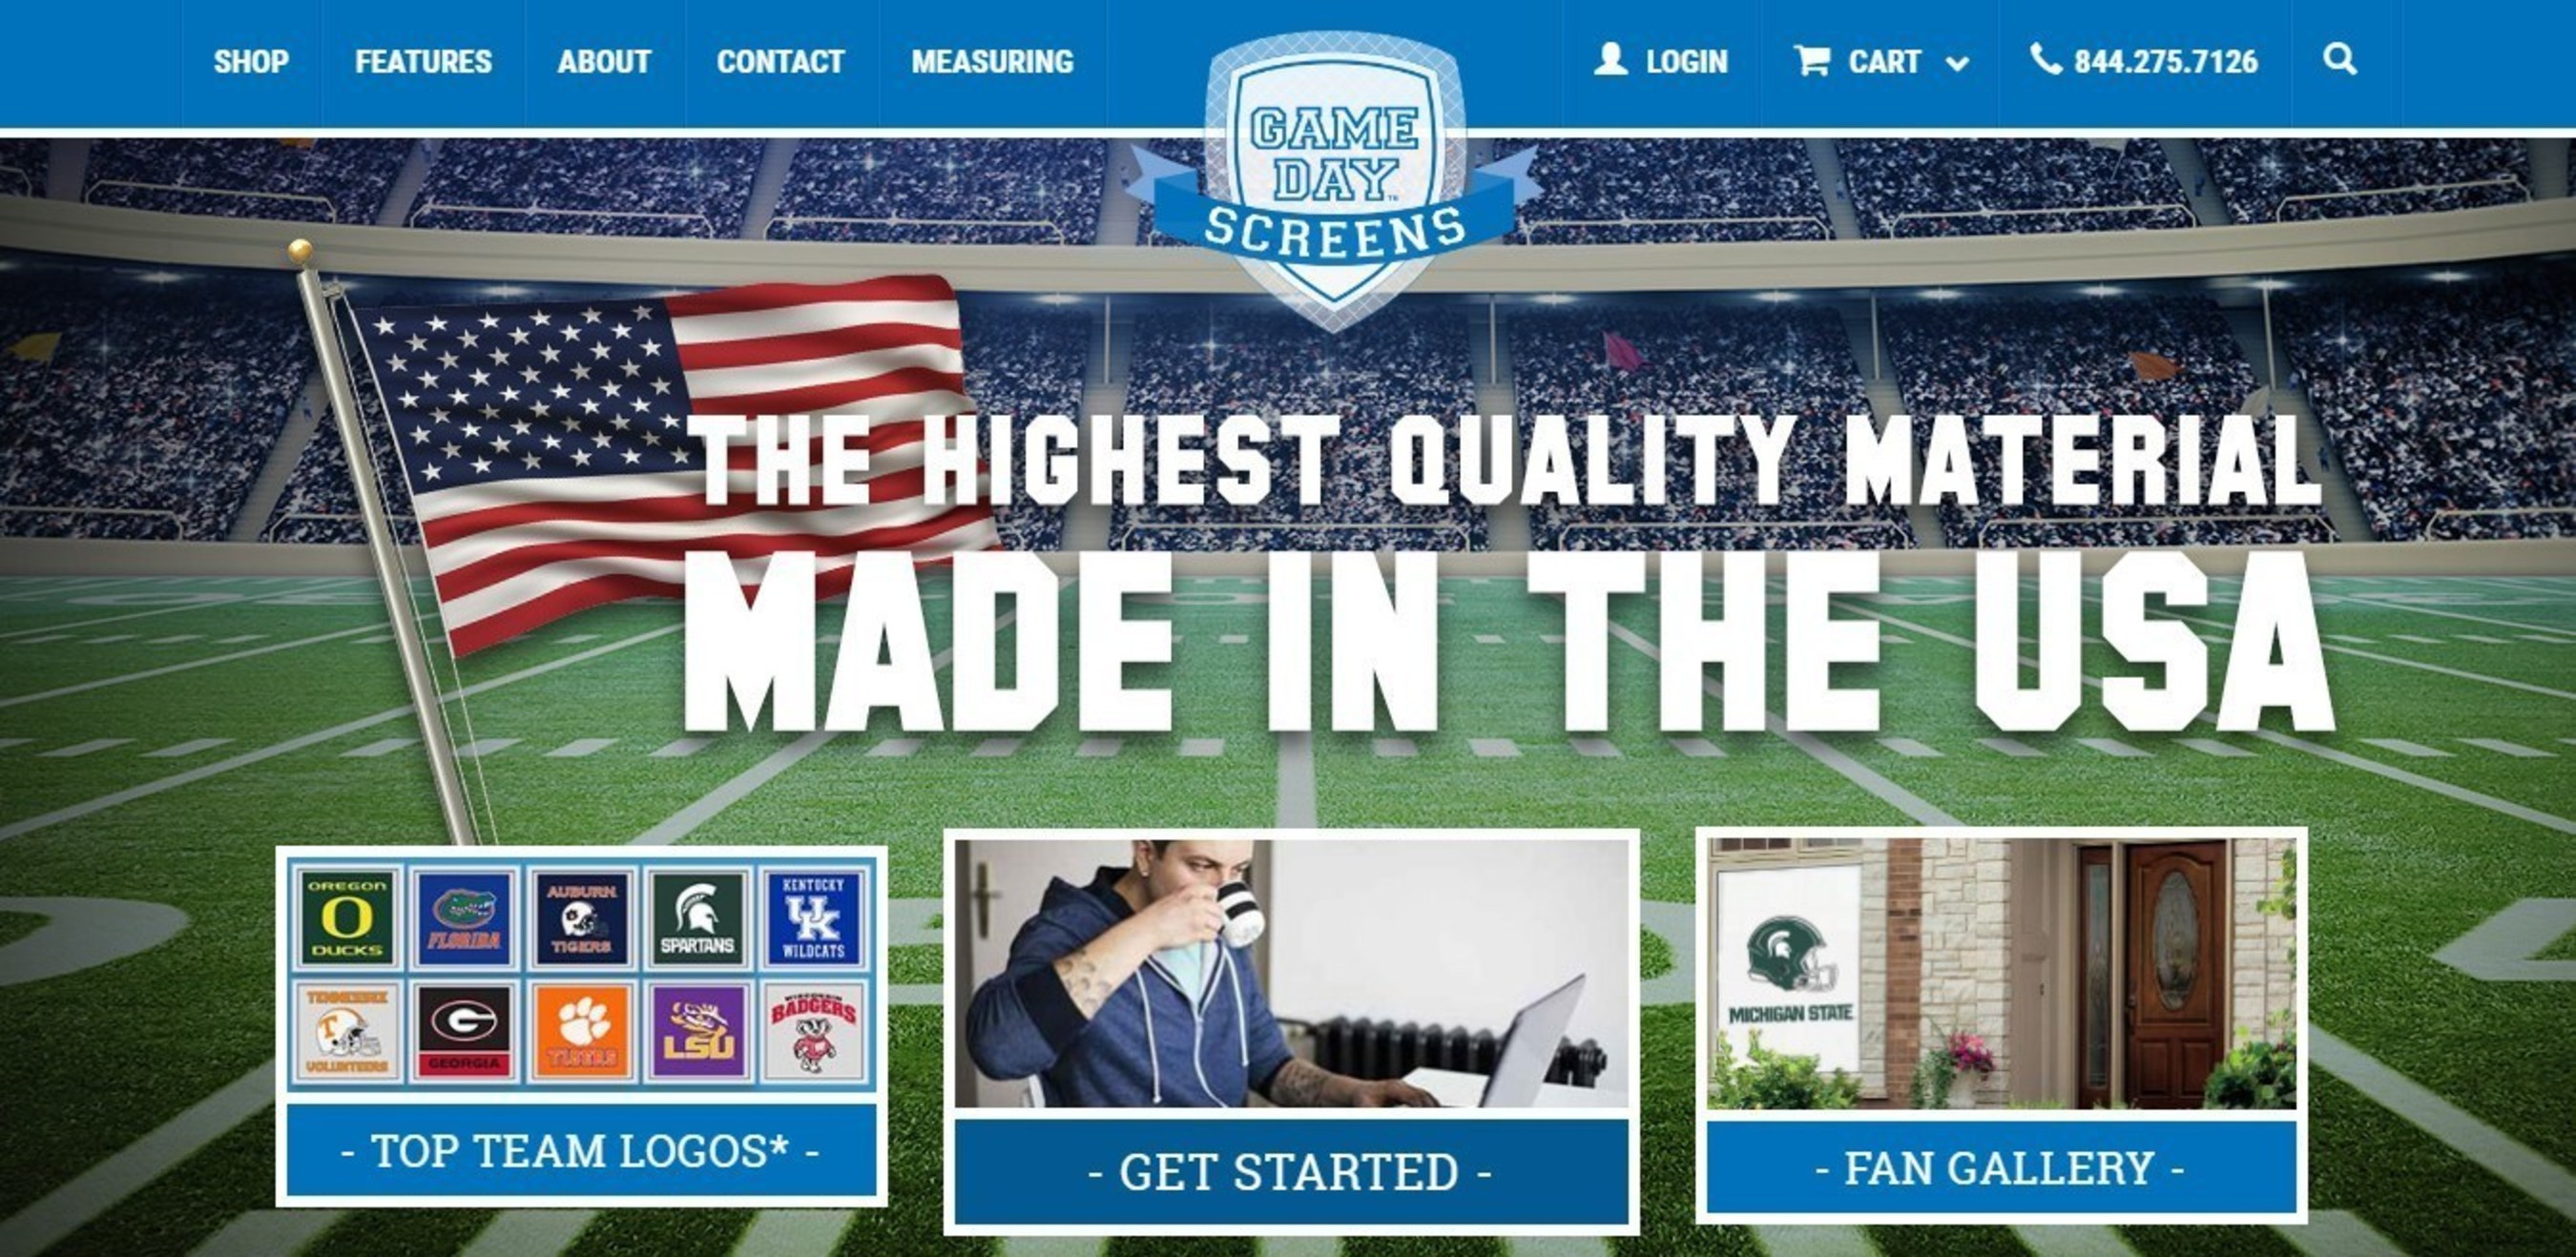 Game Day(TM) Screens; quality product made in the USA.